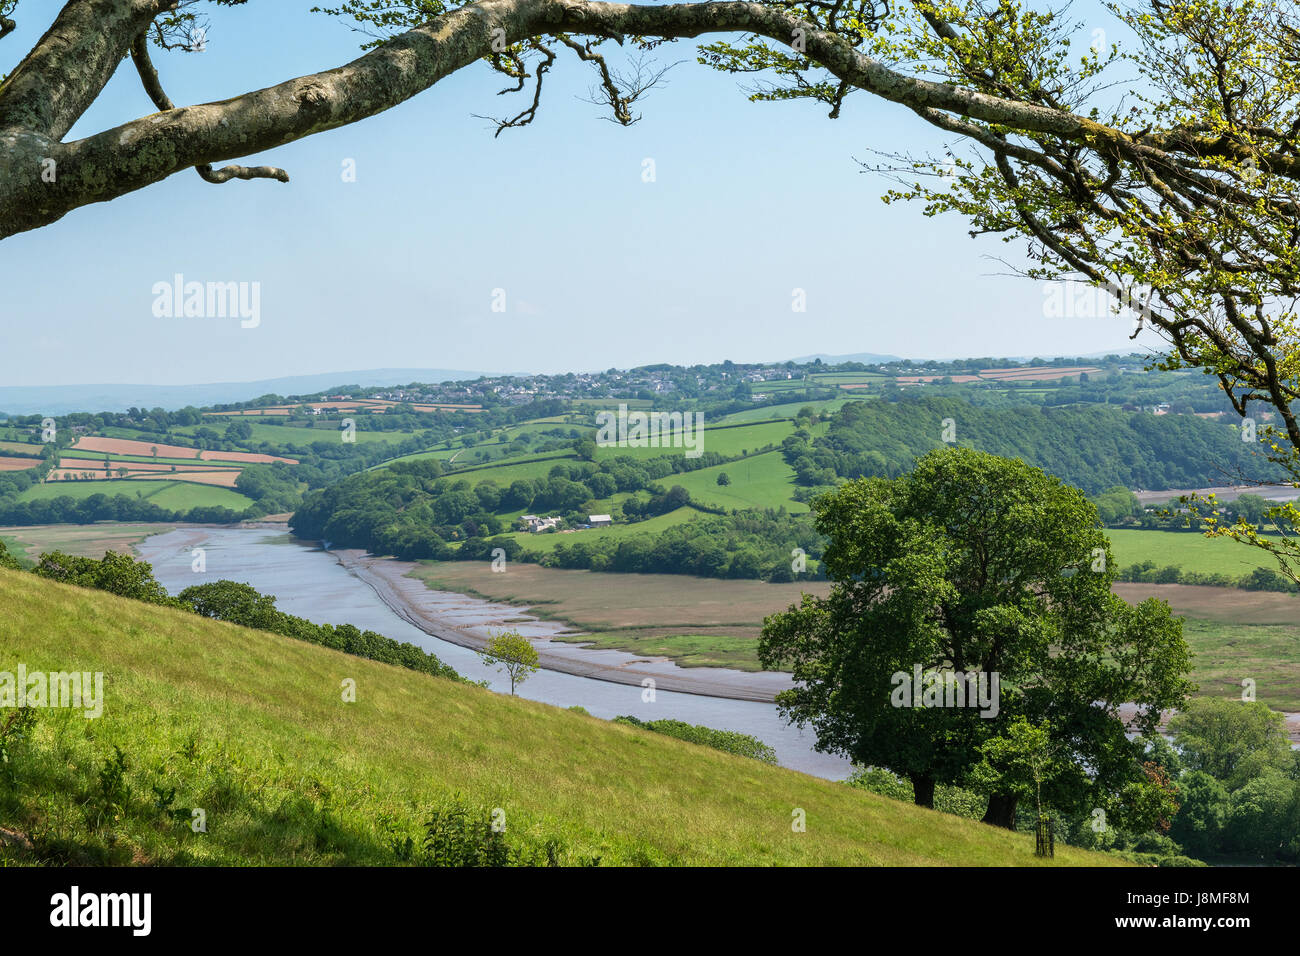 the countryside and river tamar near st.mellion in cornwall, england, britain, uk. - Stock Image